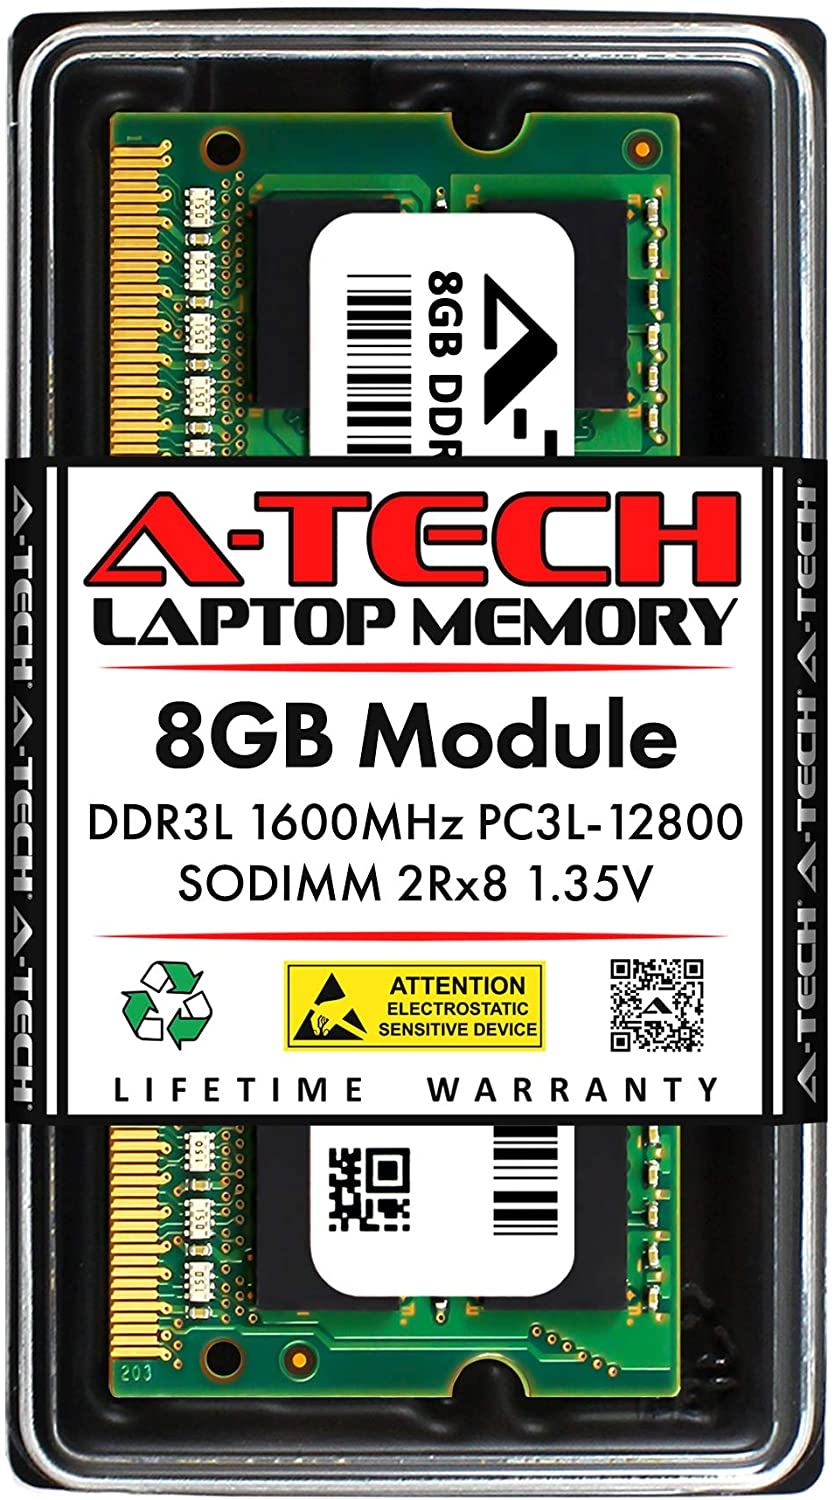 A-Tech 8GB Memory RAM for Dell Inspiron 17 5000 5749 - DDR3L 1600MHz PC3-12800 Non ECC SO-DIMM 2Rx8 1.35V - Single Laptop & Notebook Upgrade Module (Replacement for SNPN2M64C/8G)